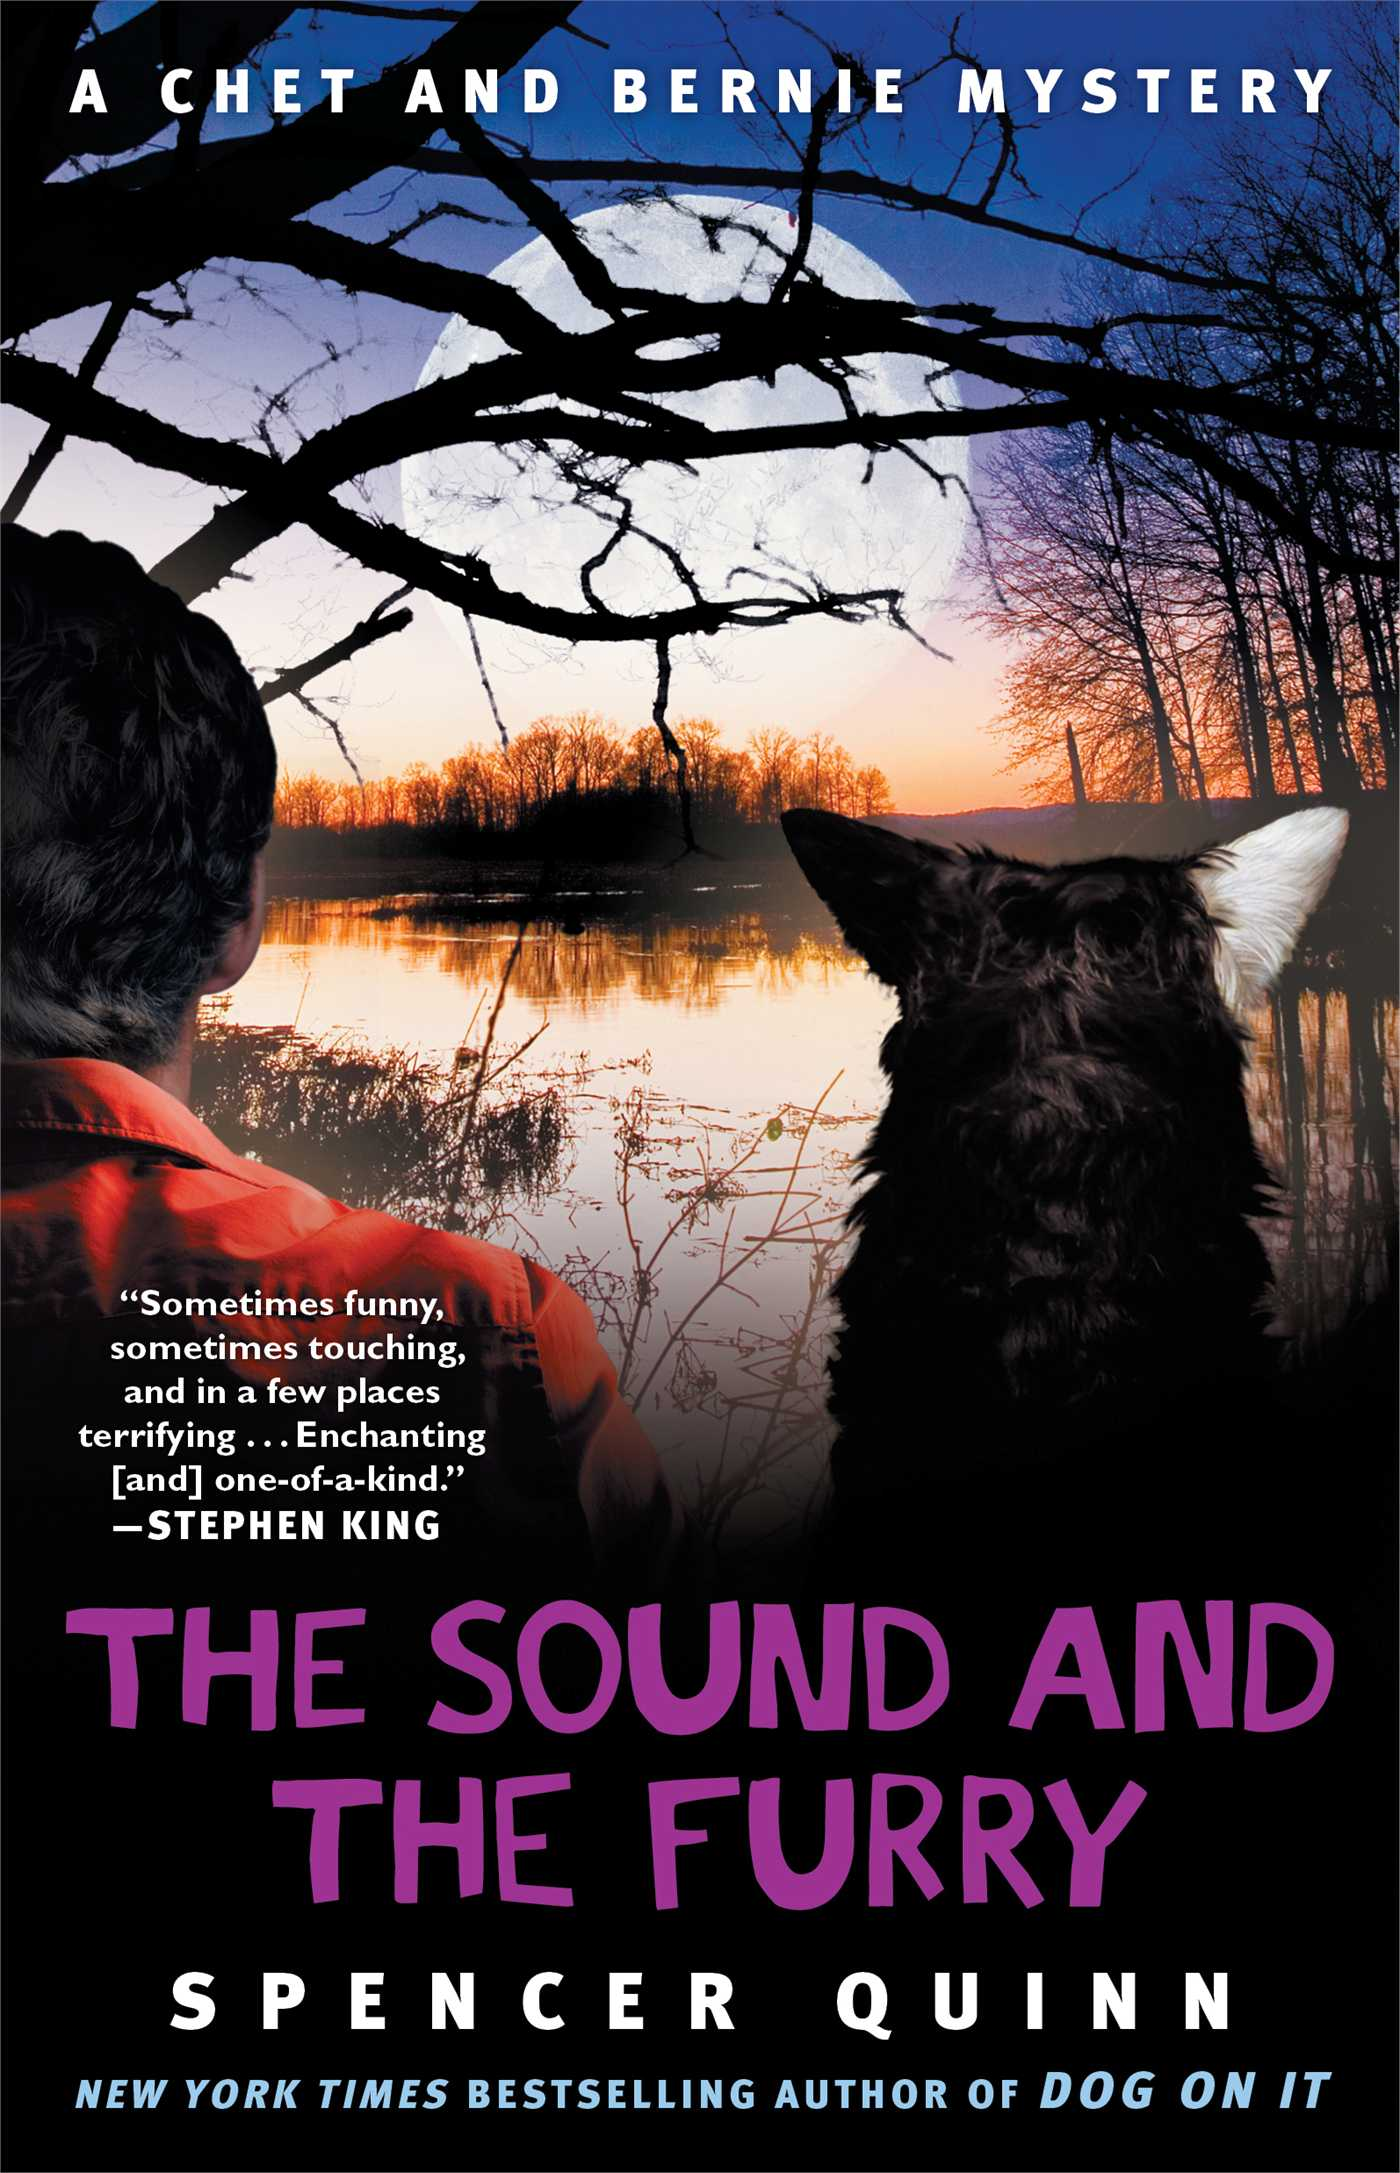 Sound-and-the-furry-9781476703244_hr